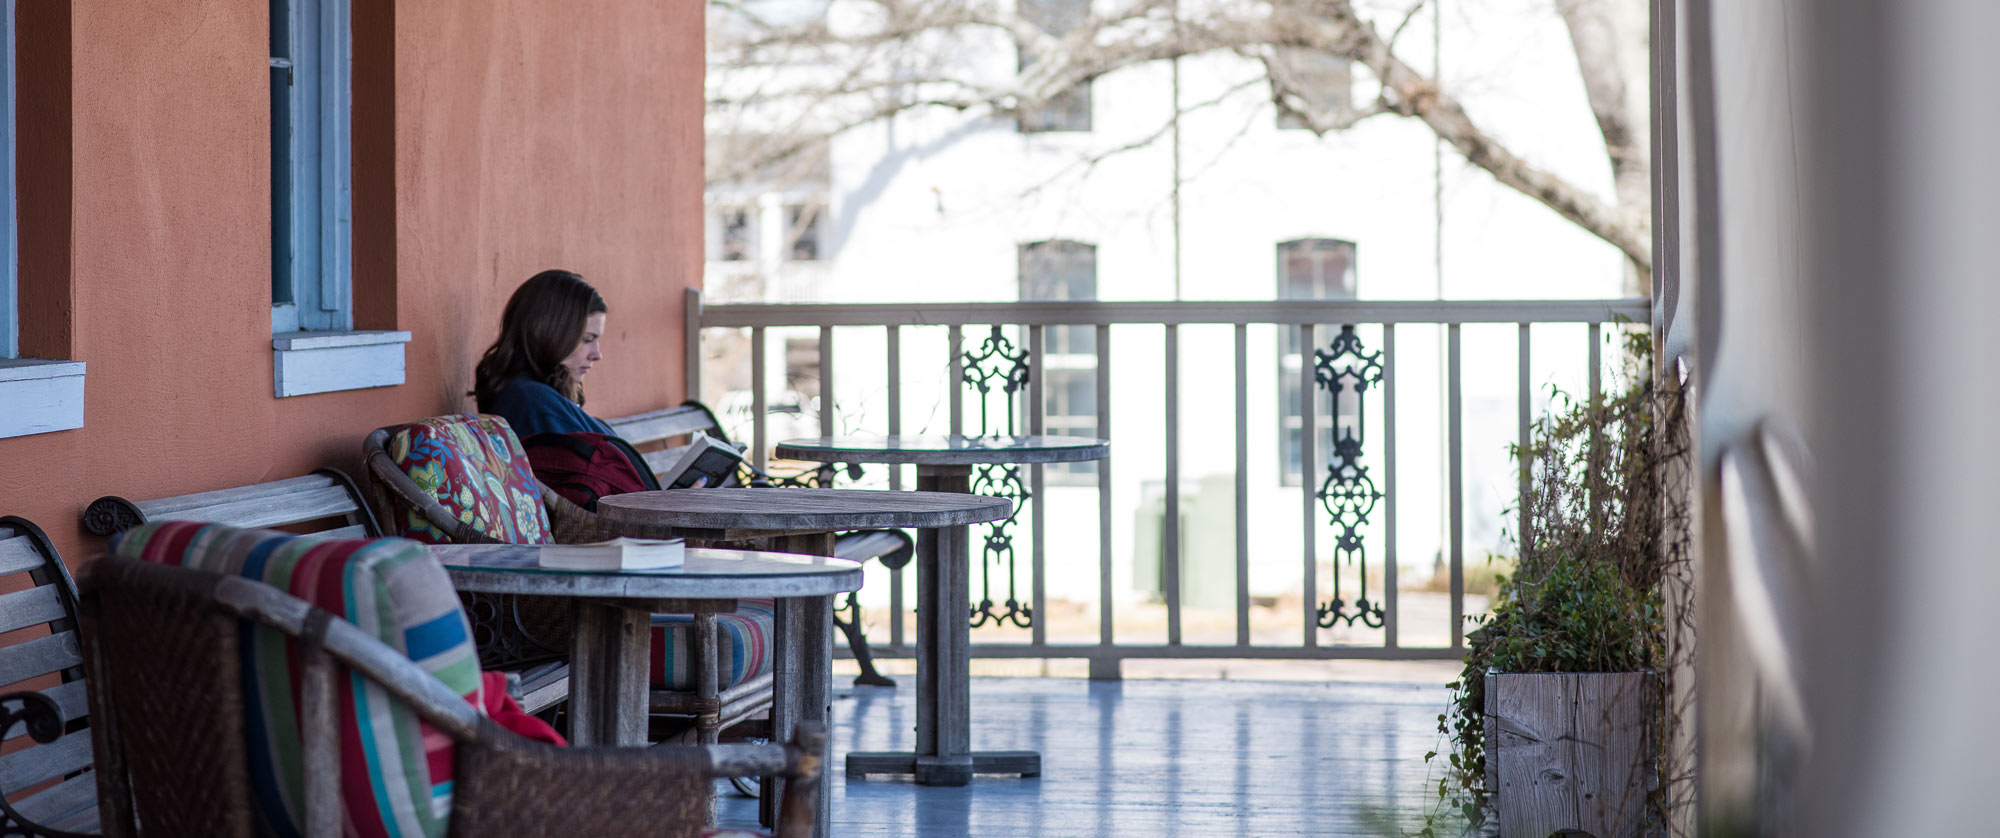 Reading a book on the Square Books Balcony, Oxford Mississippi